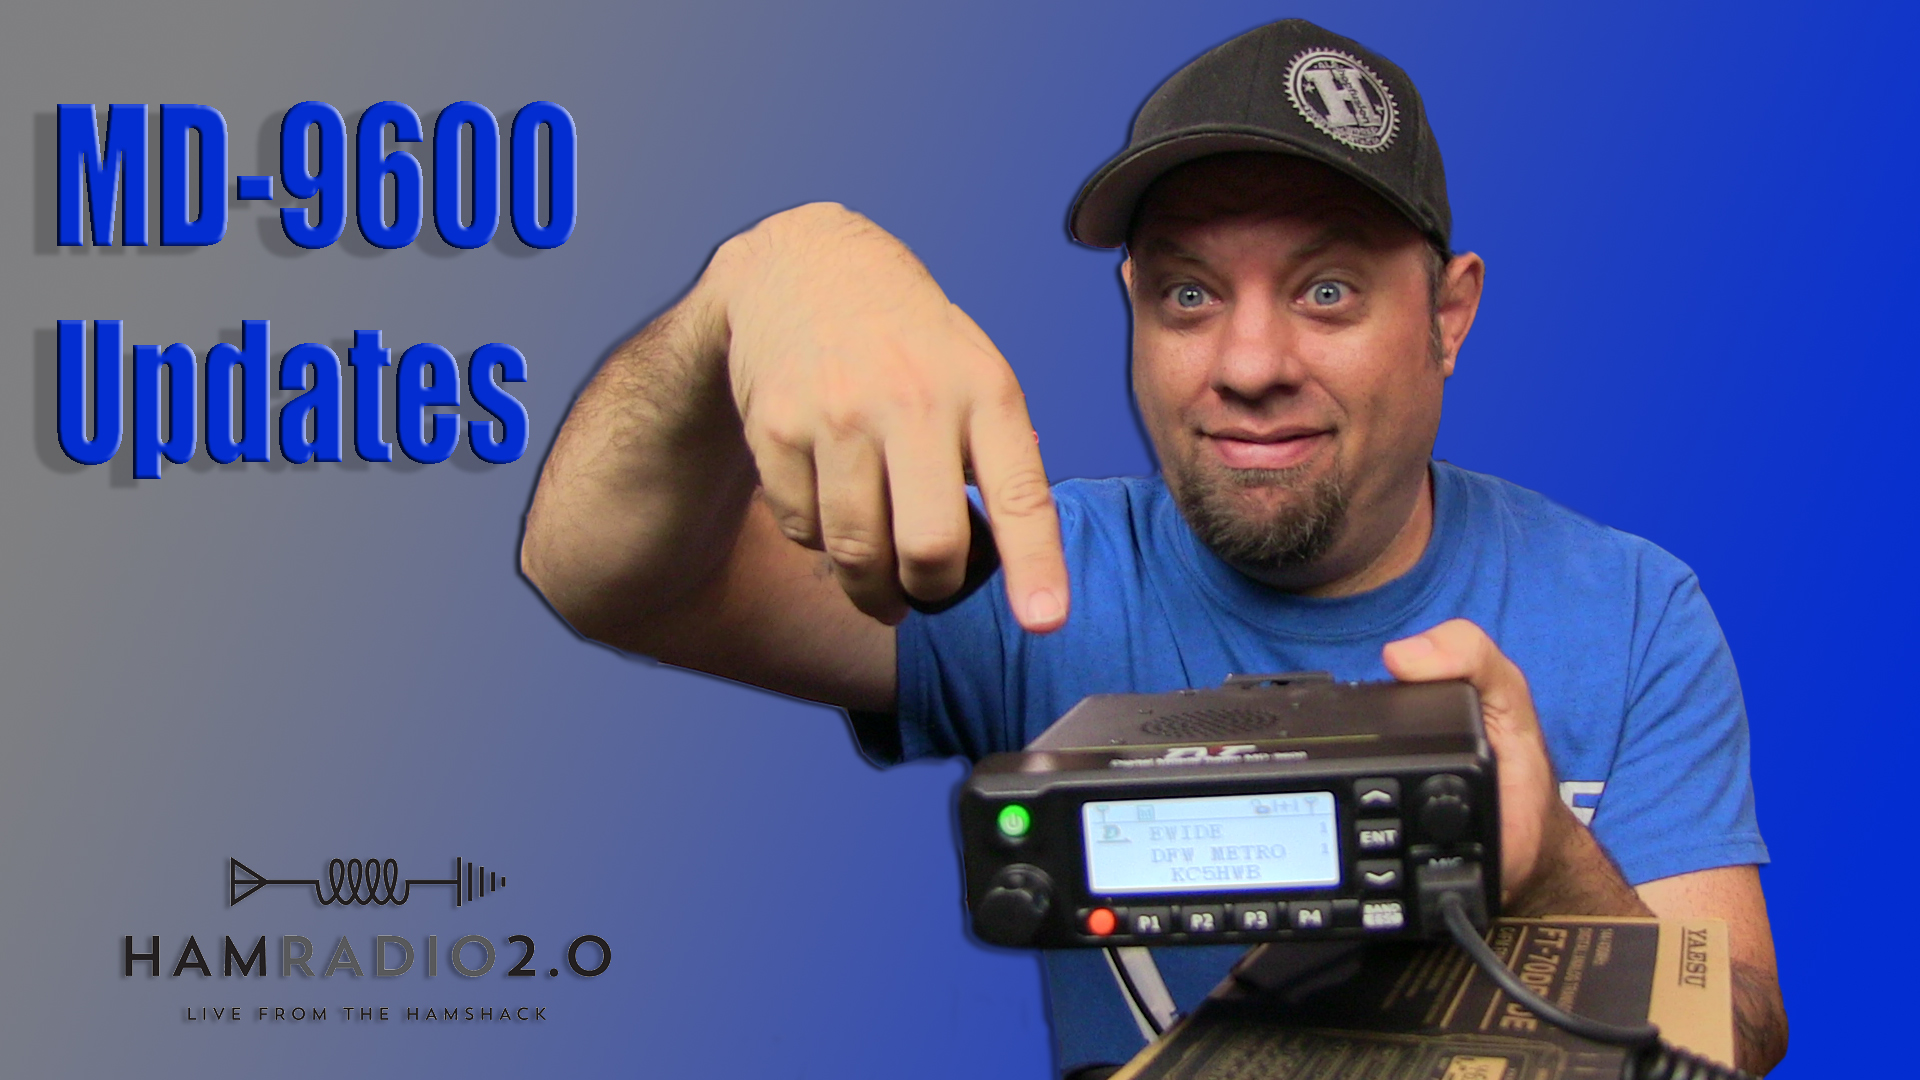 Episode 207: TYT MD9600 Firmware and Contacts Updating